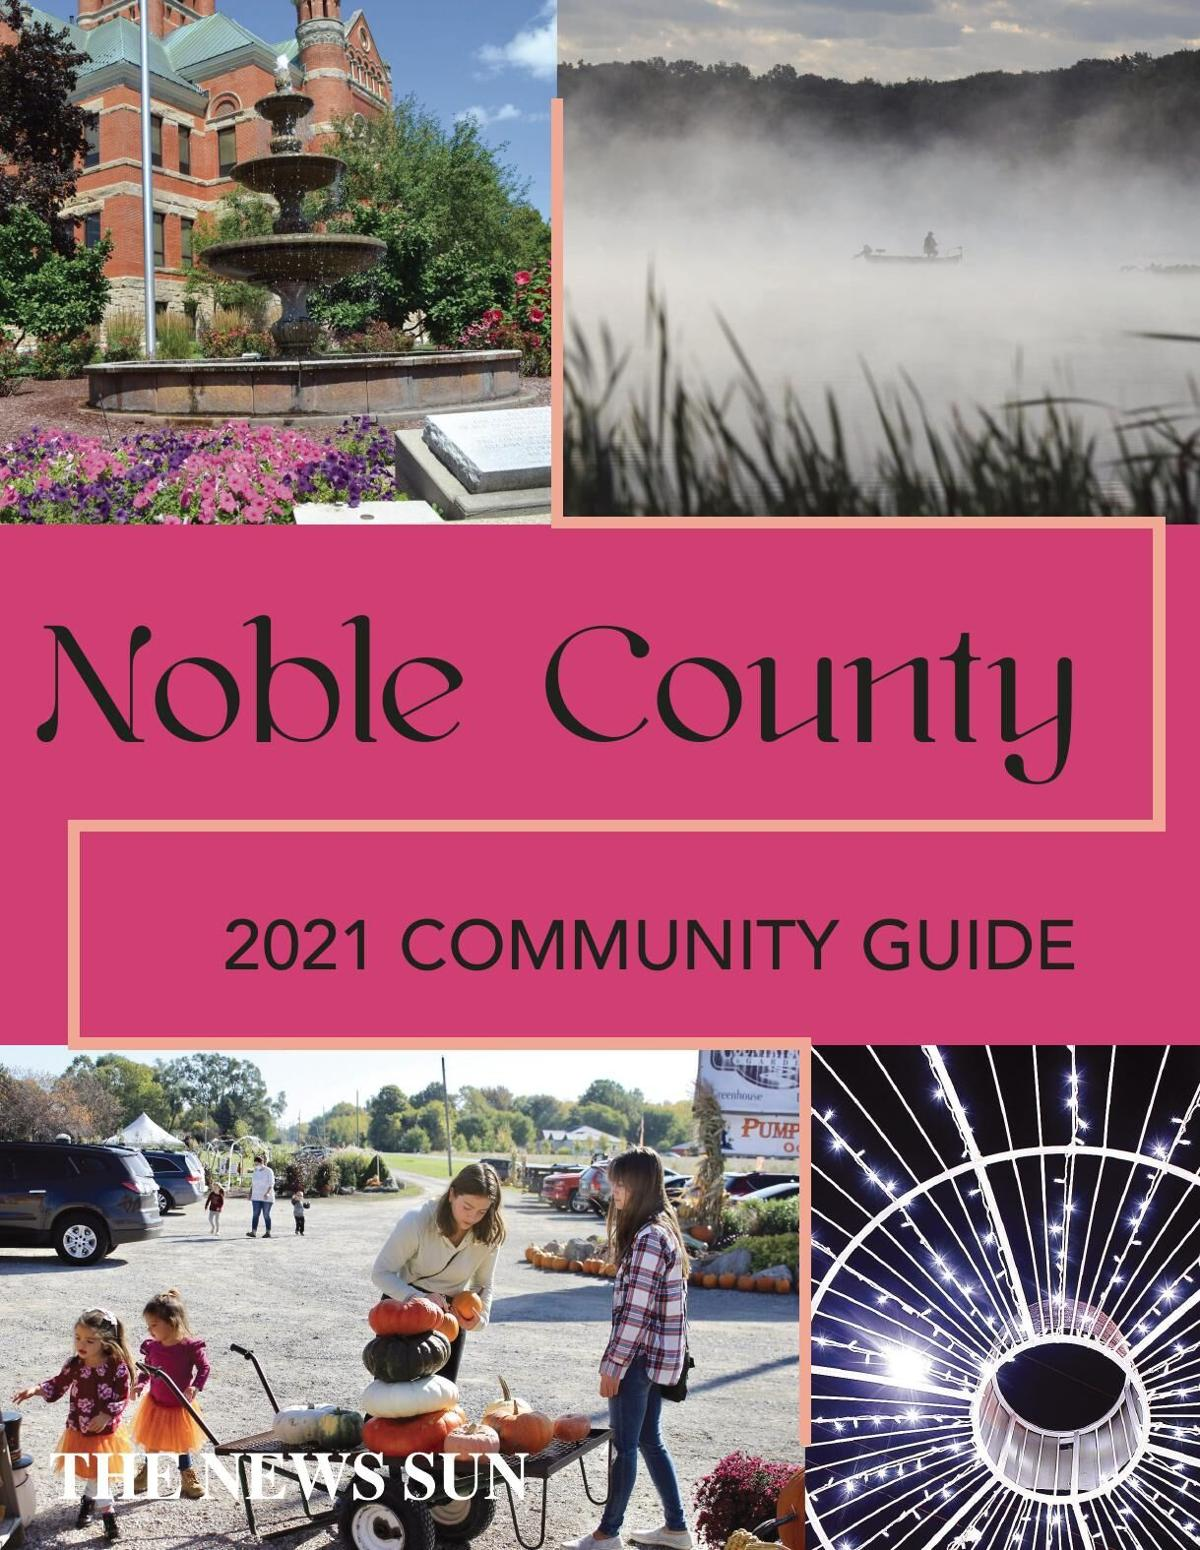 Noble County Community Guide 2021